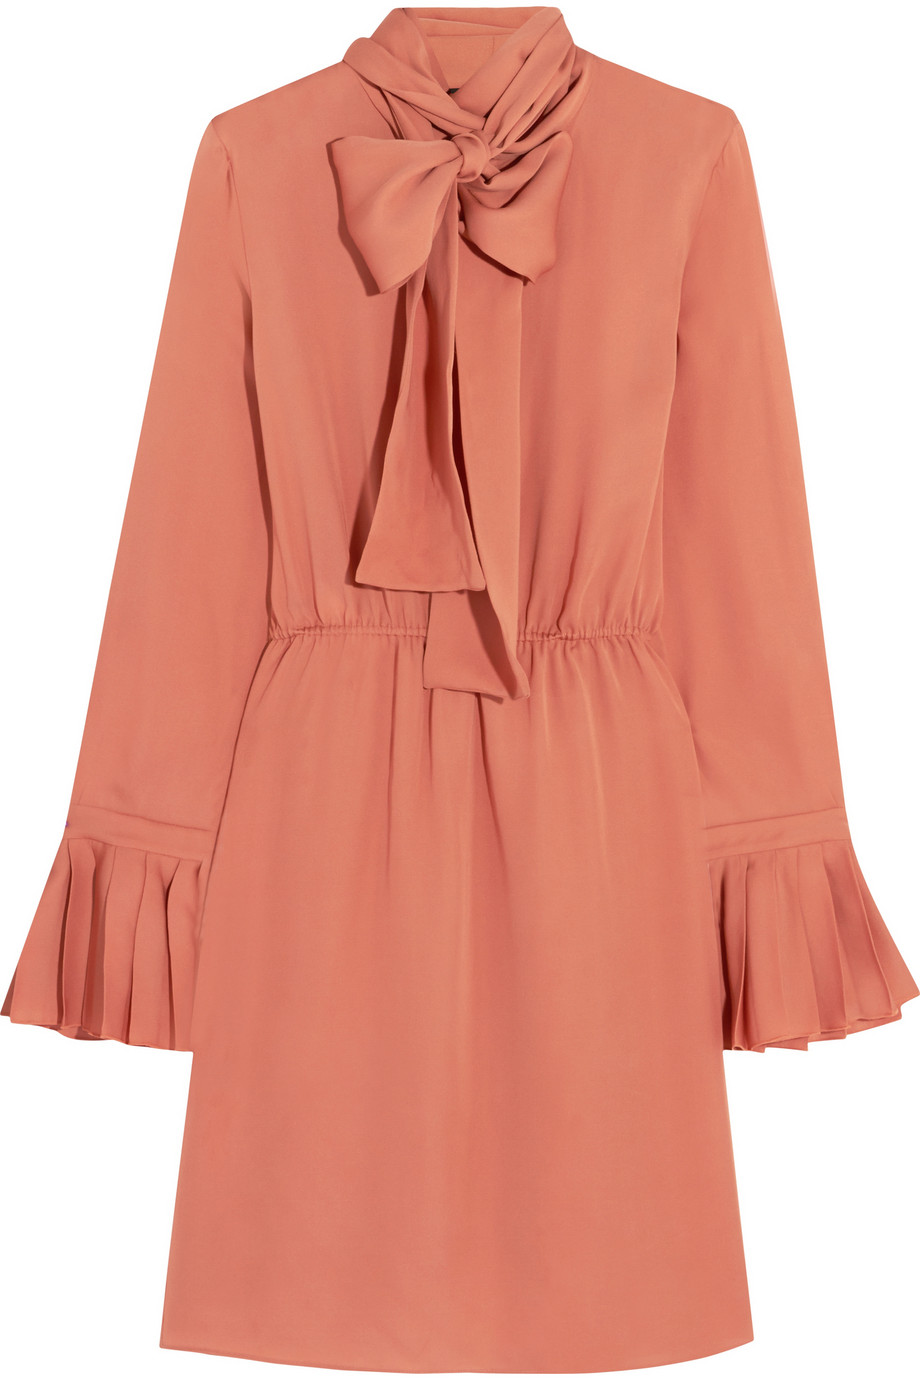 Gucci Pussy Bow Silk Georgette Dress. NET-A-PORTER. $1,980.